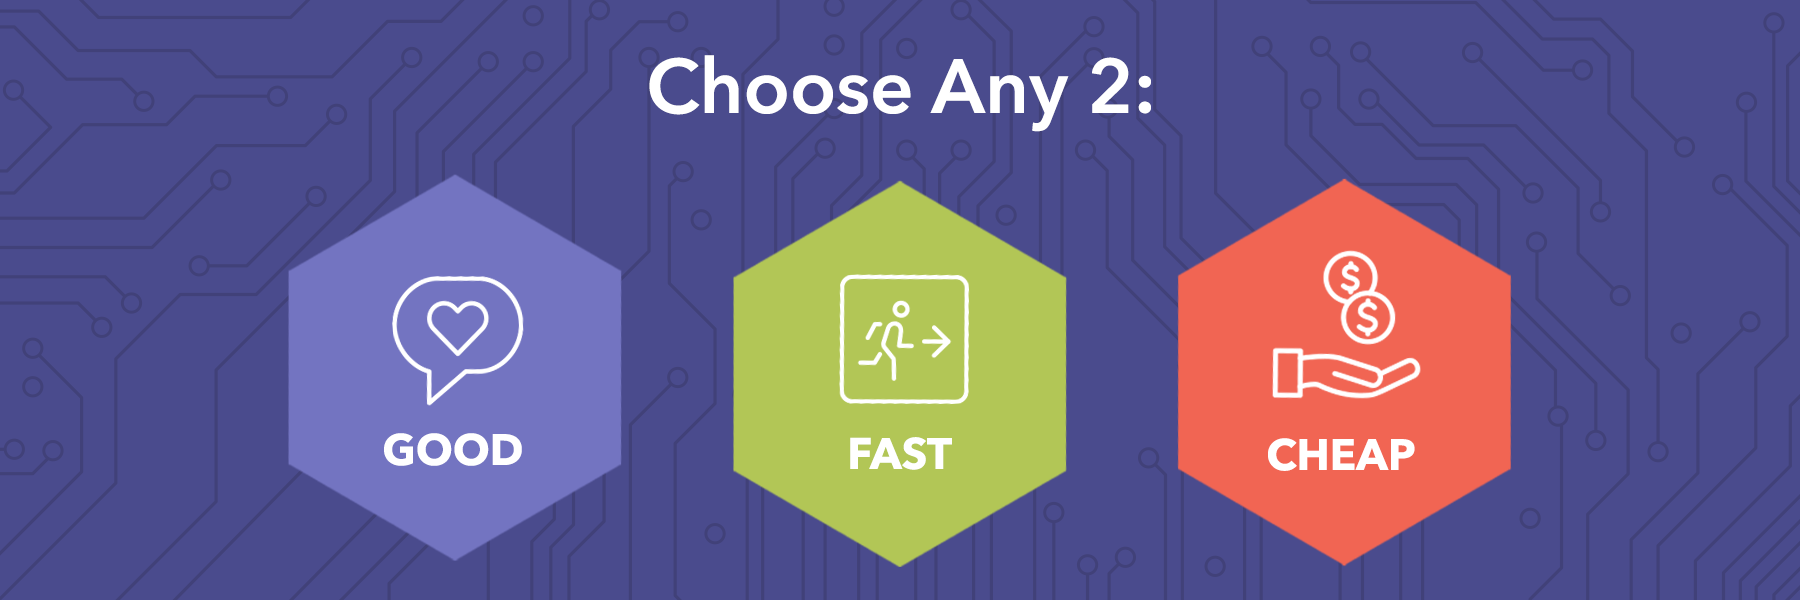 Choose any 2: Good, Fast, Cheap.